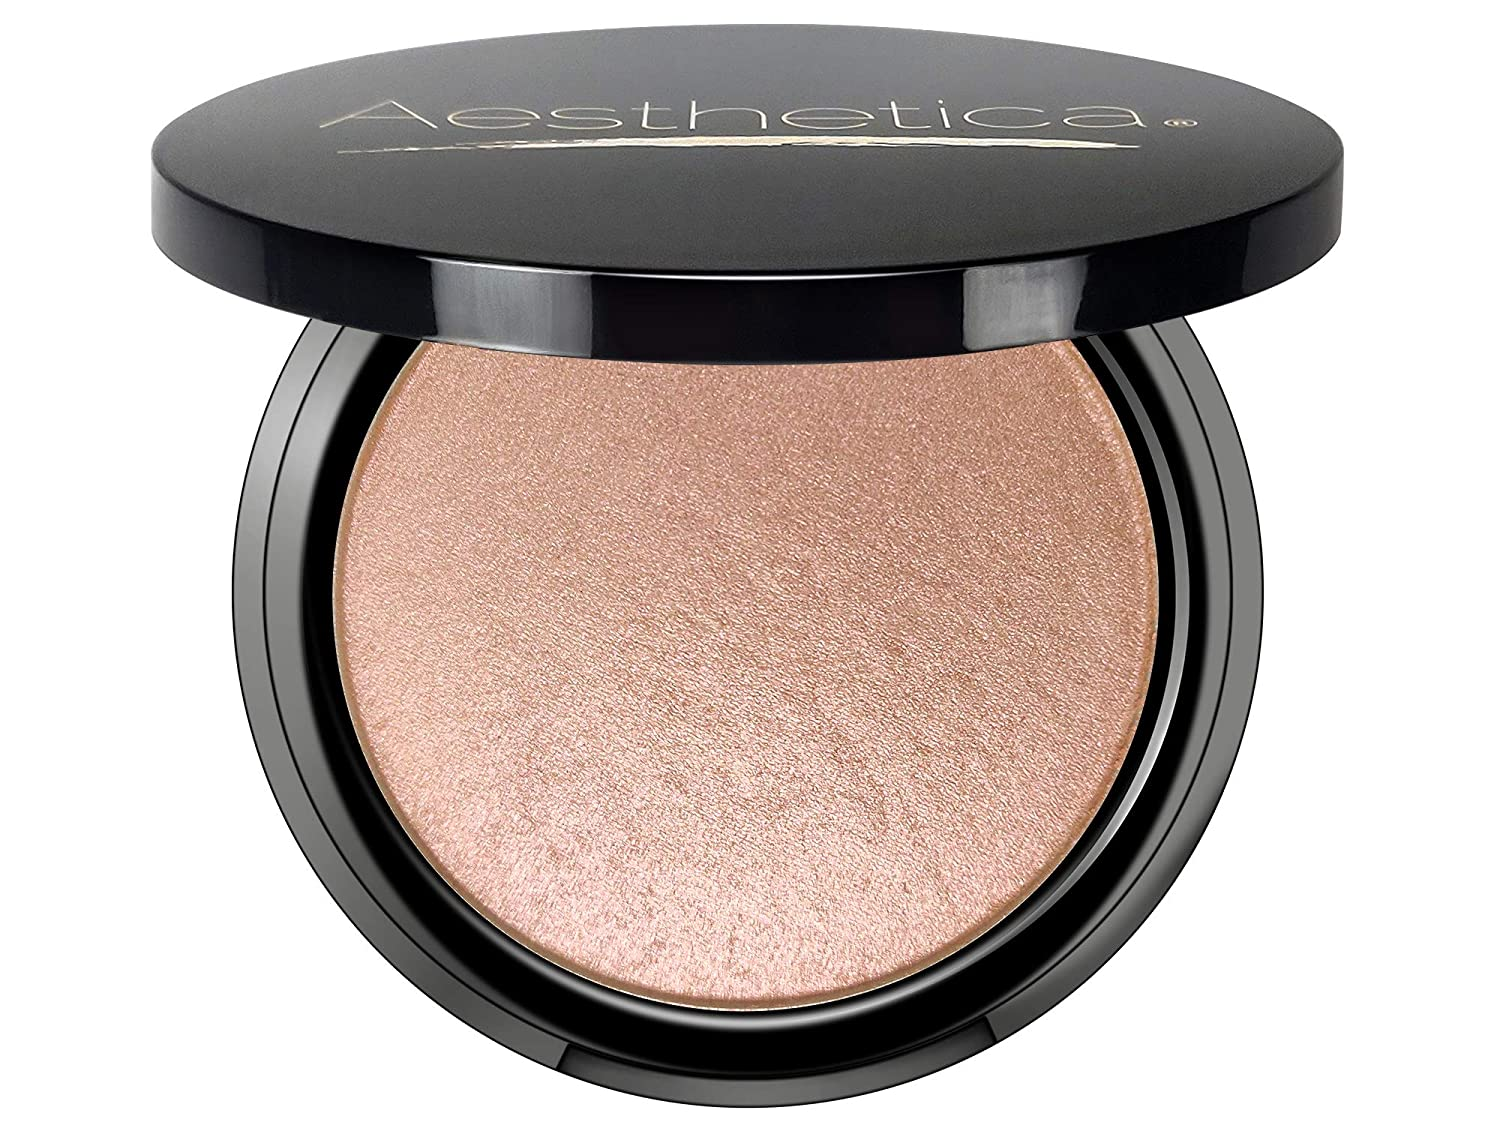 Aesthetica Starlite Highlighter - Metallic Shimmer Highlighting Makeup Powder - Cosmos (Sparkling Rose Gold)